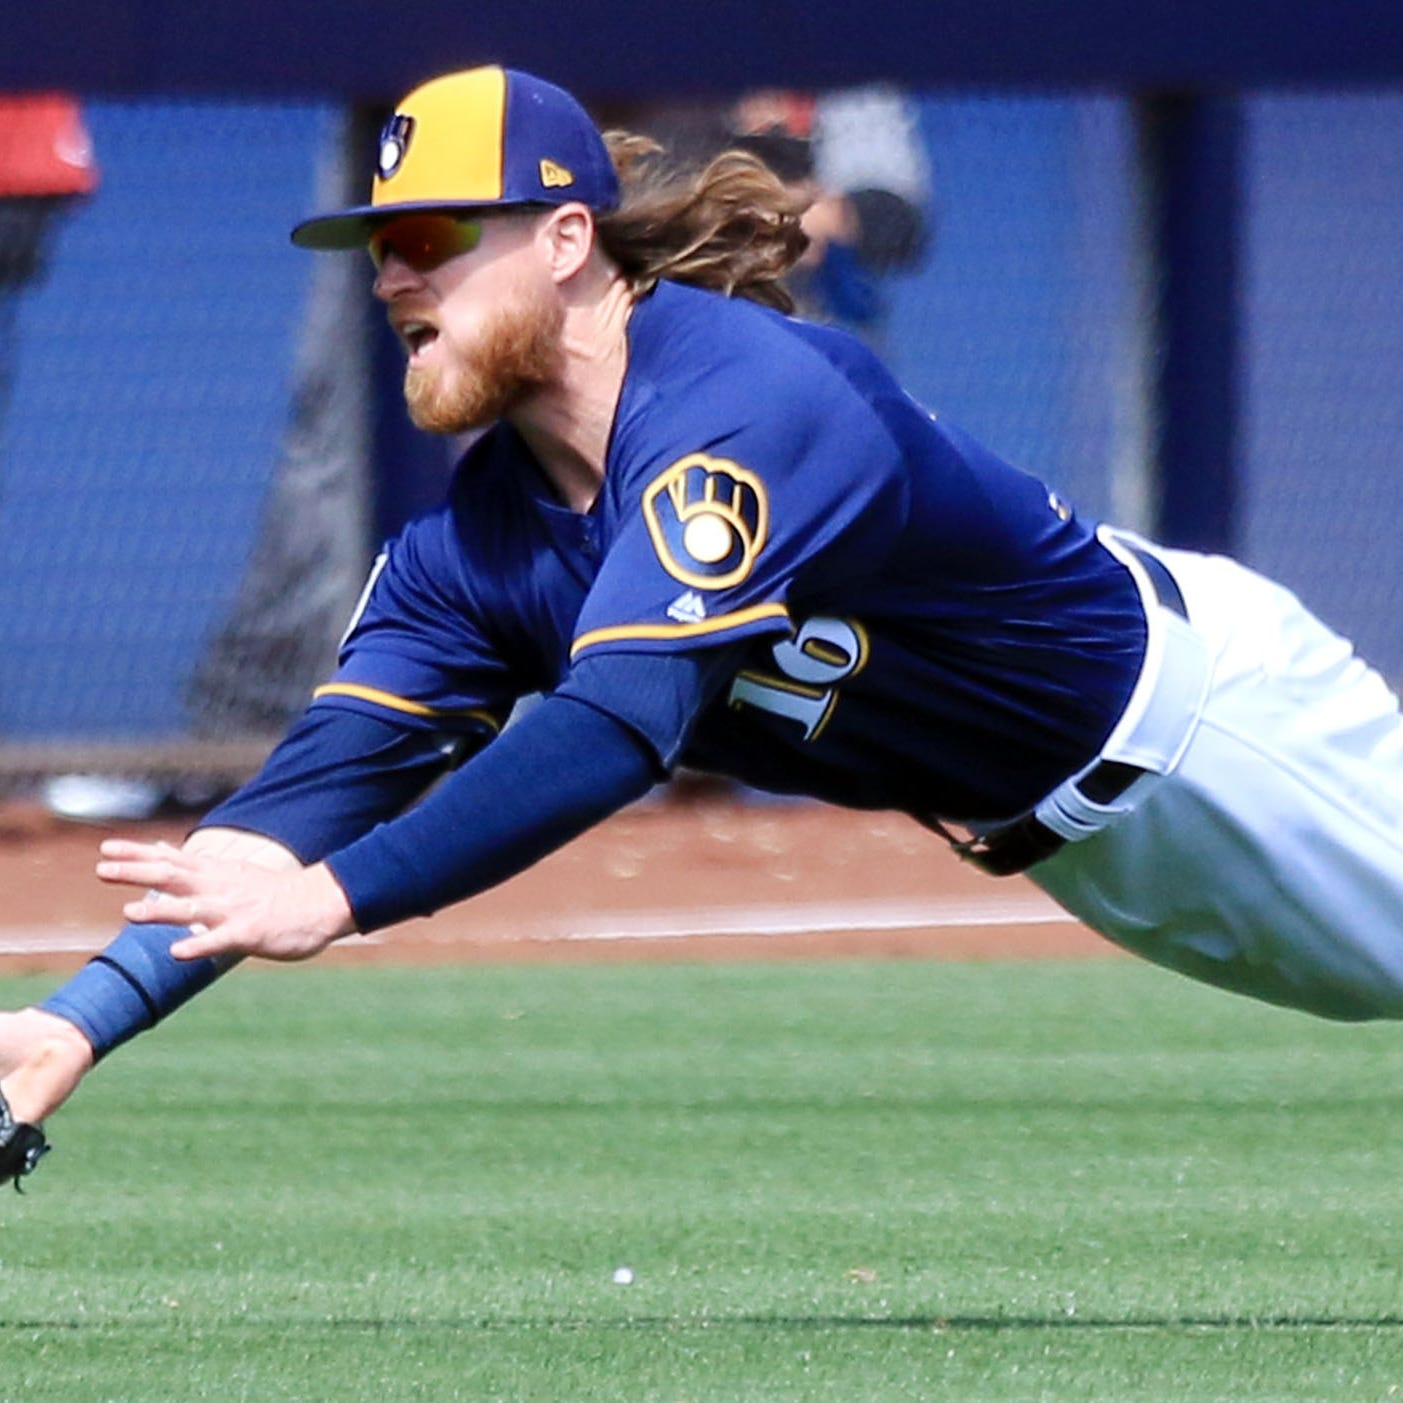 Brewers opt for depth in the outfield by keeping Ben Gamel to round out the bench